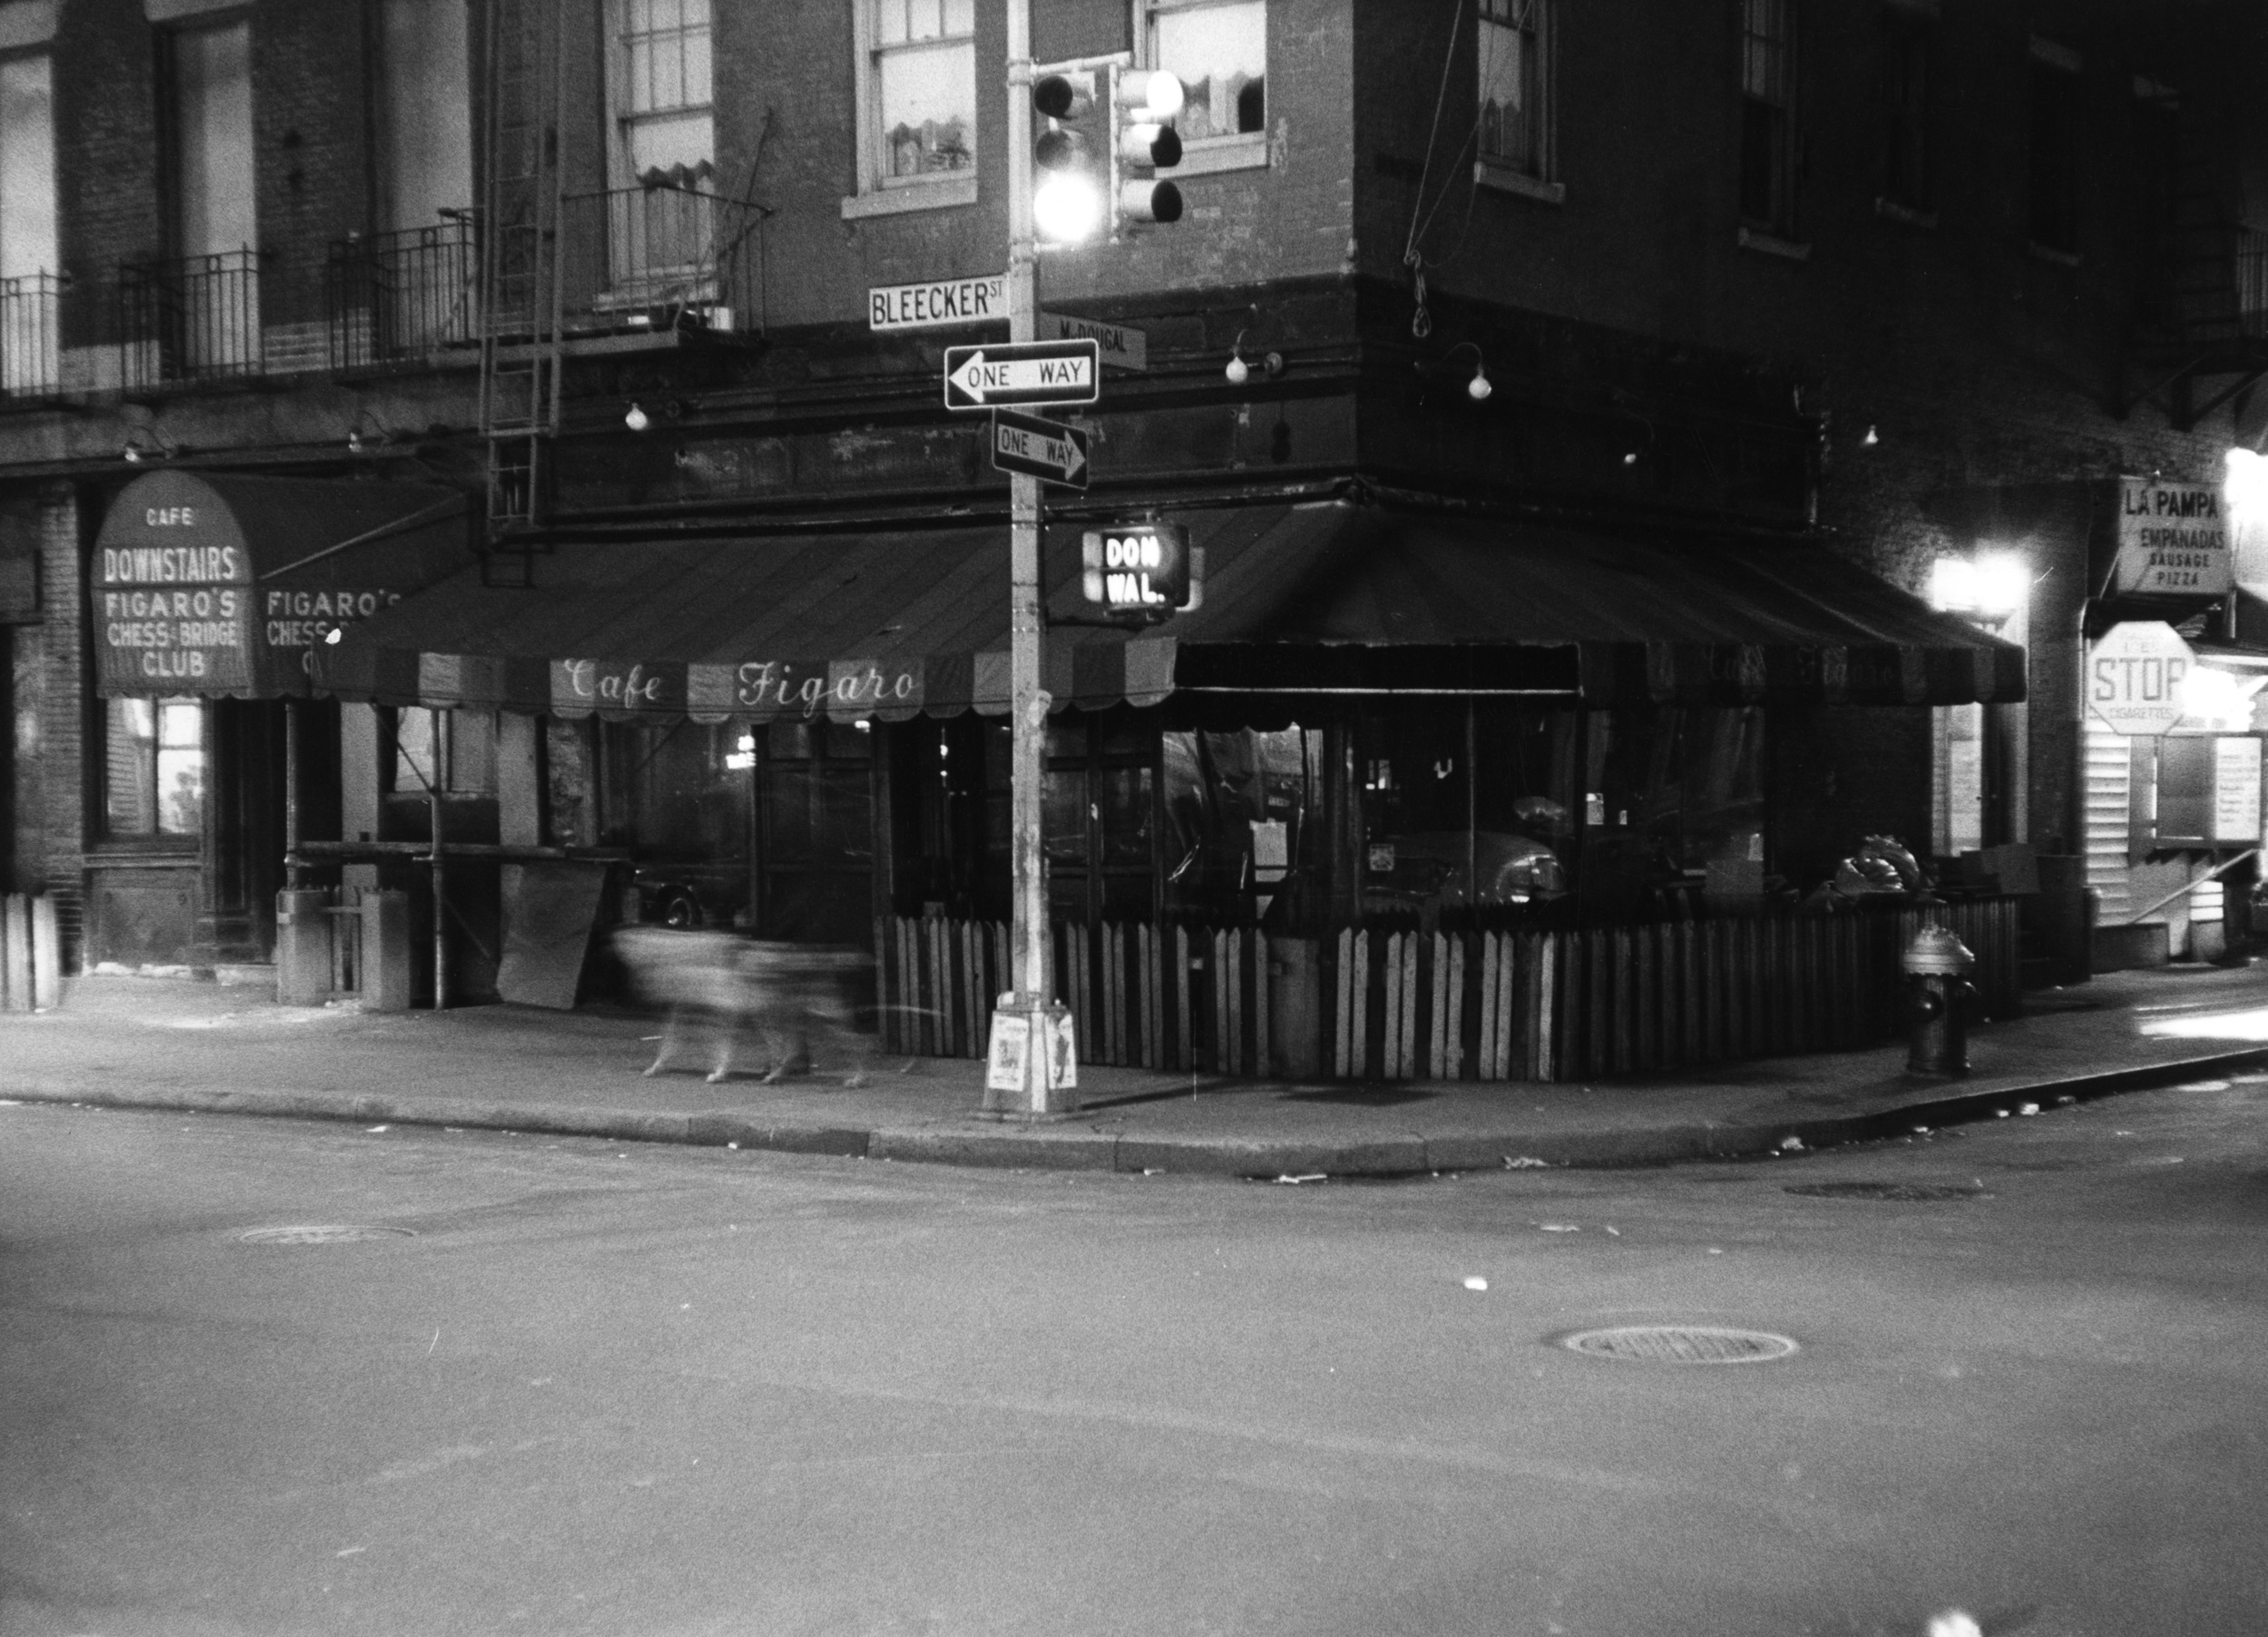 The Figaro Café, southeast corner of Bleecker and MacDougal, in 1969. Same spot, below, in April 2016. Photos © Estate of Fred W. McDarrah